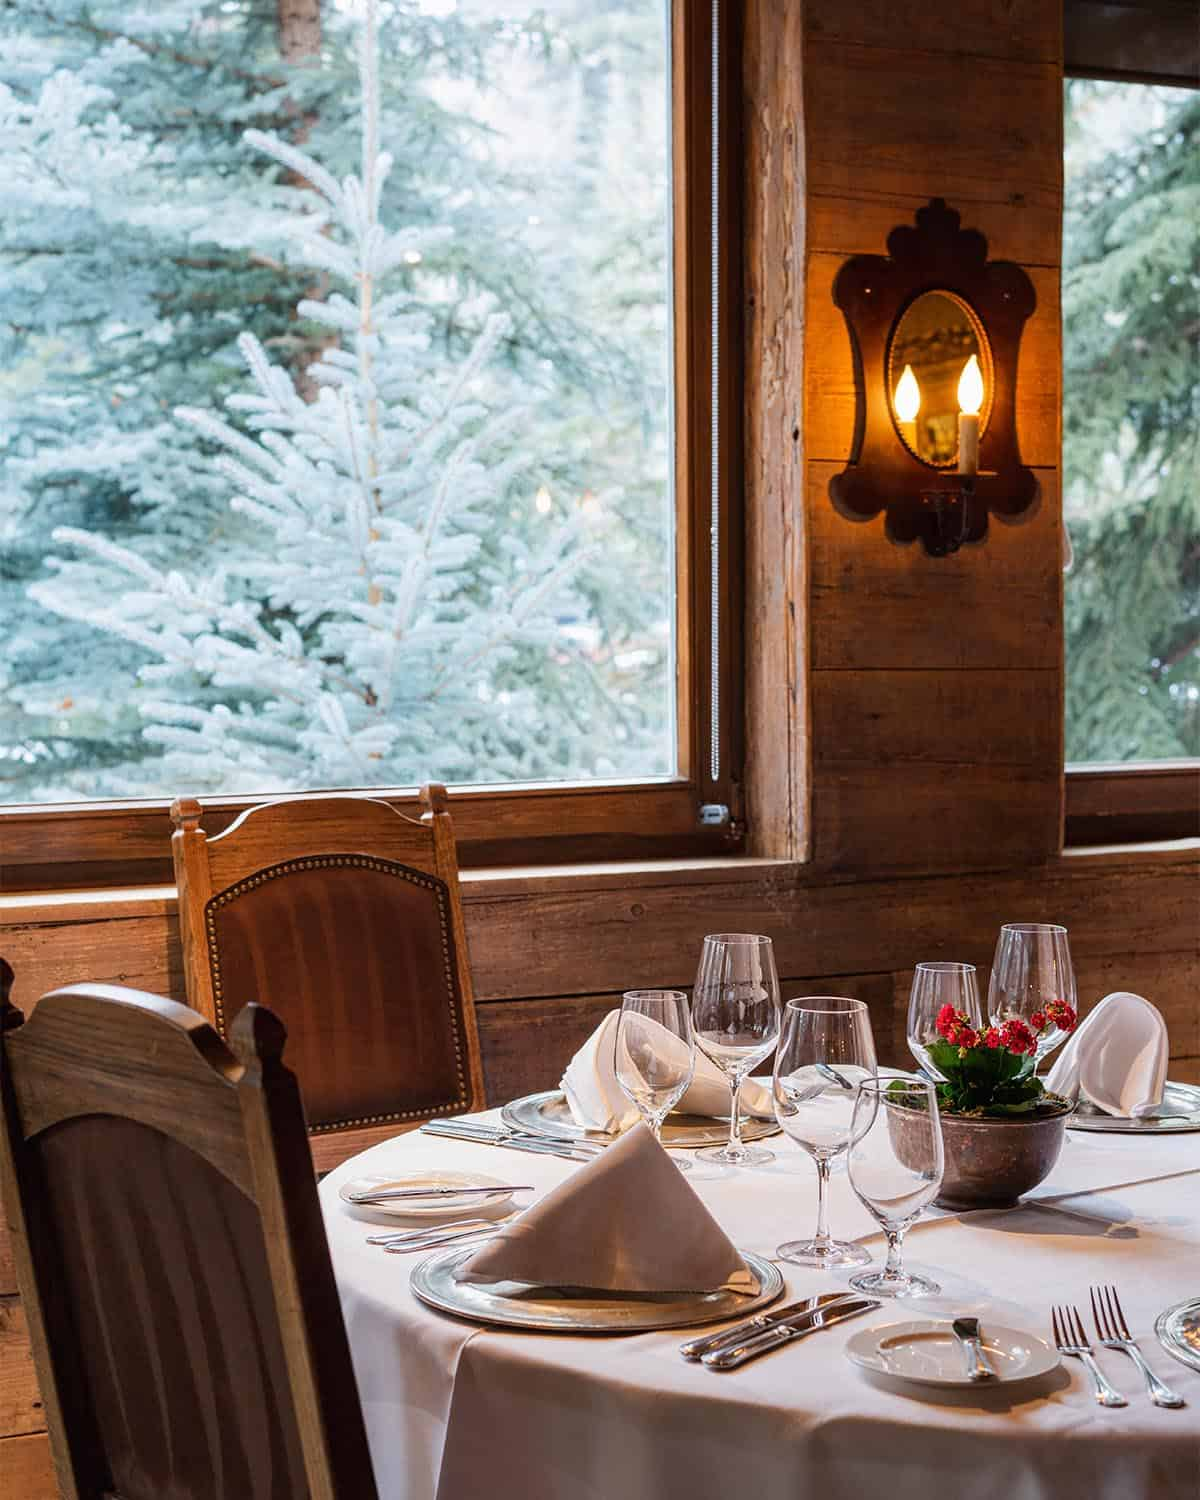 Round table set for dinner, chairs, next to window with view of snow-covered pine trees in the background